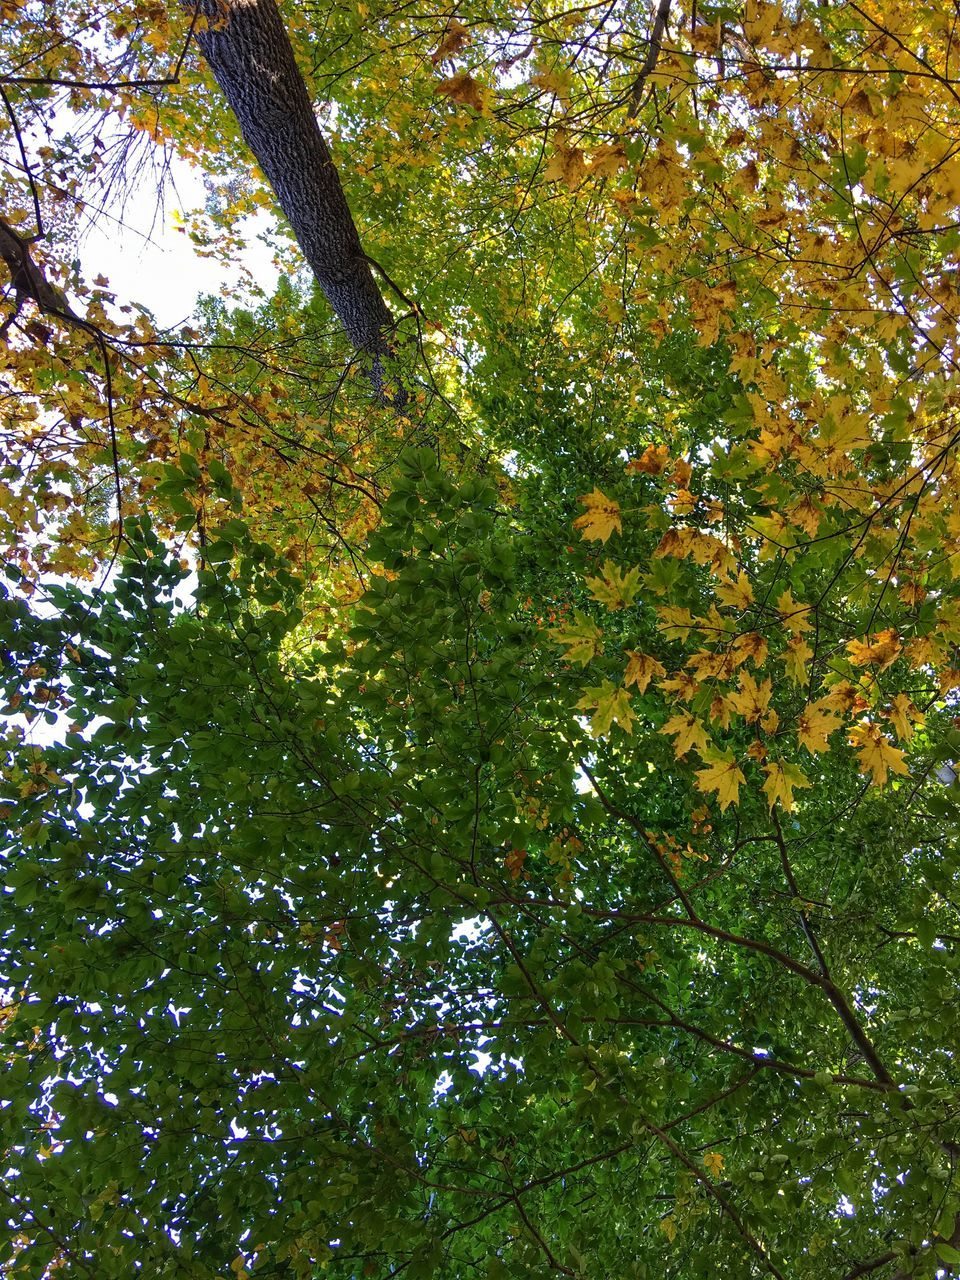 tree, nature, growth, low angle view, beauty in nature, leaf, branch, forest, day, green color, outdoors, autumn, no people, tranquility, scenics, freshness